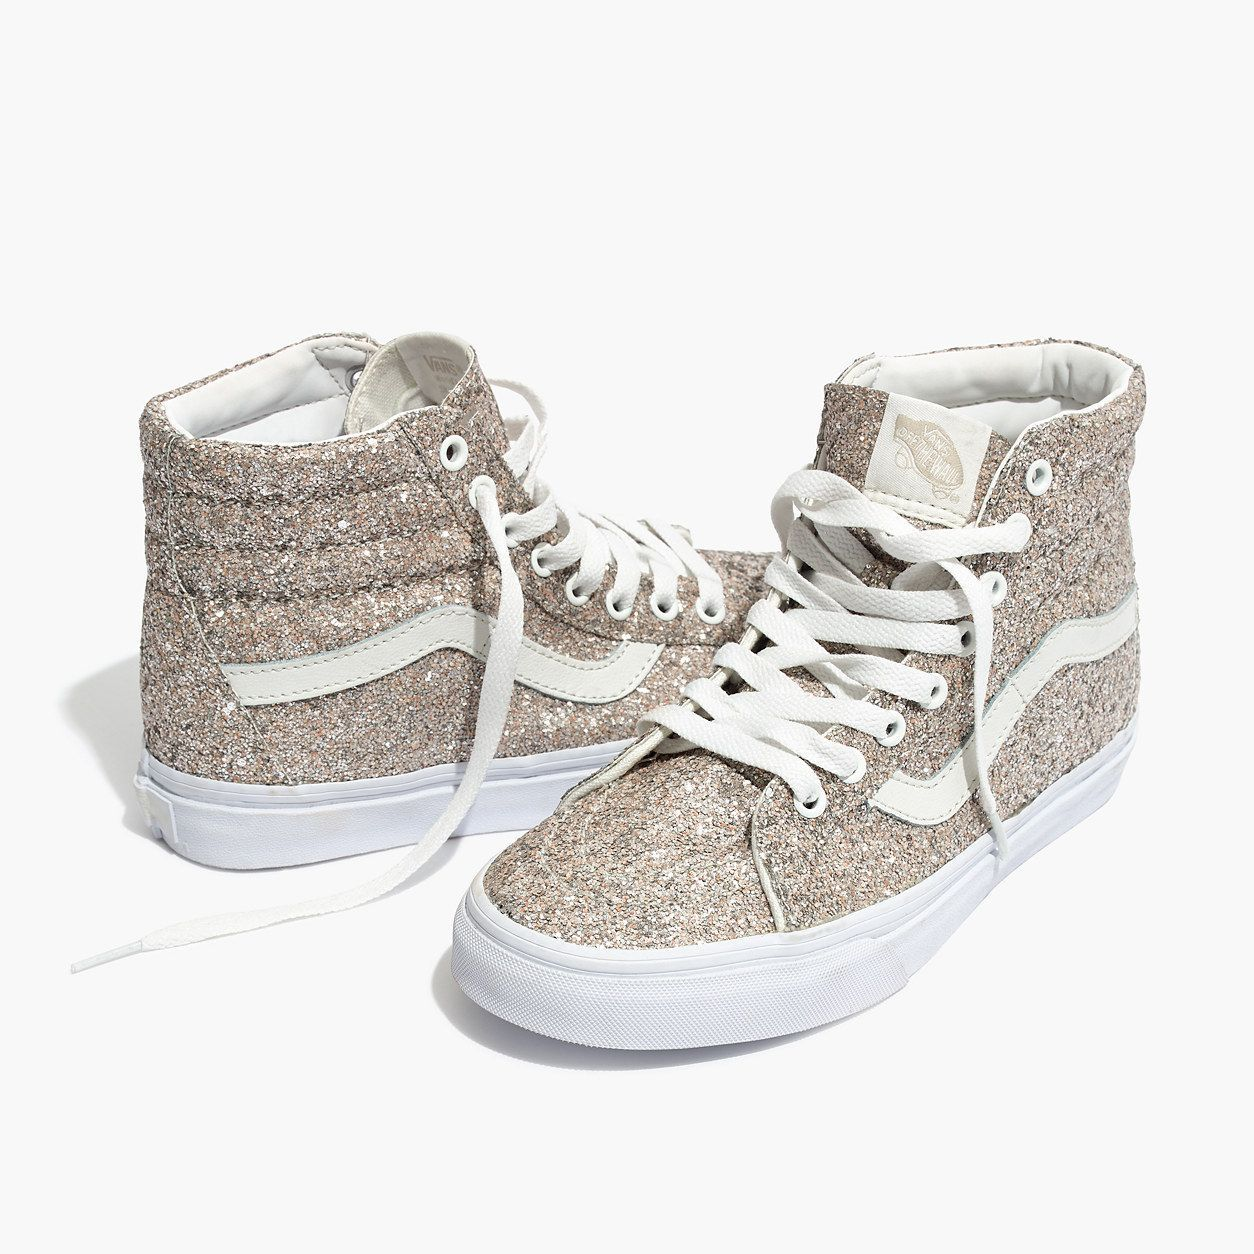 22c593c991 Madewell Womens Vans Unisex Sk8-Hi High-Top Sneakers In Glitter ...